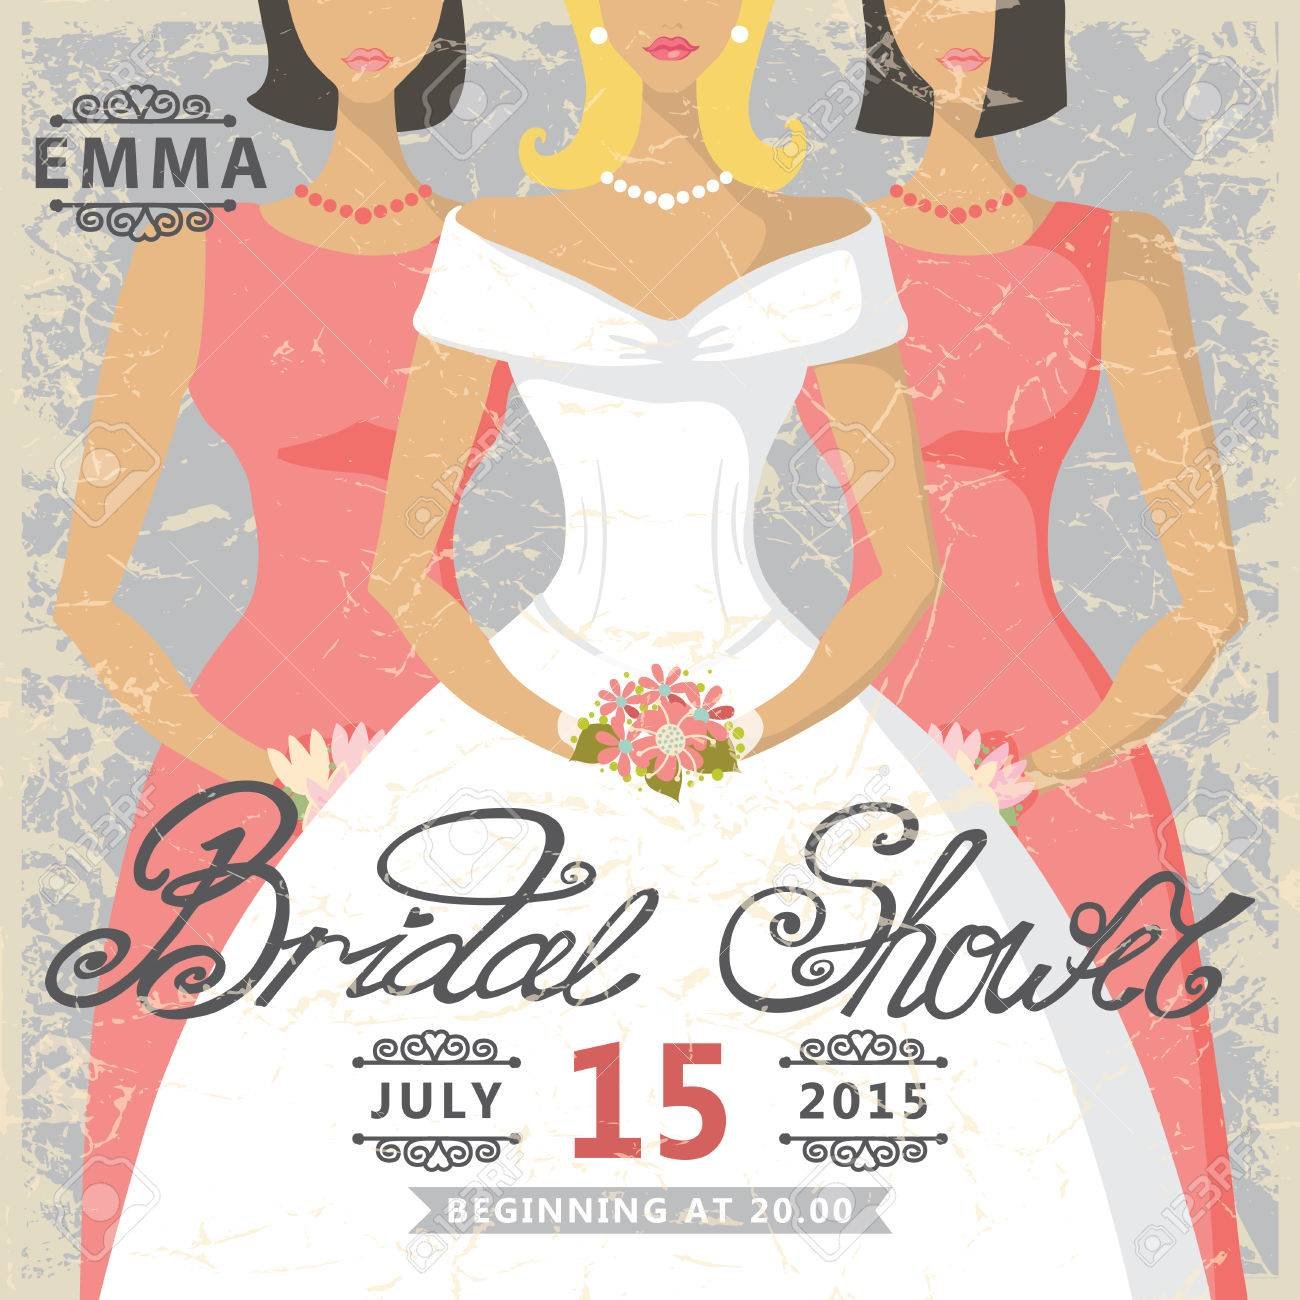 retro bridal shower invitationcute cartoon bride in white dress and bridesmaids in pink dress